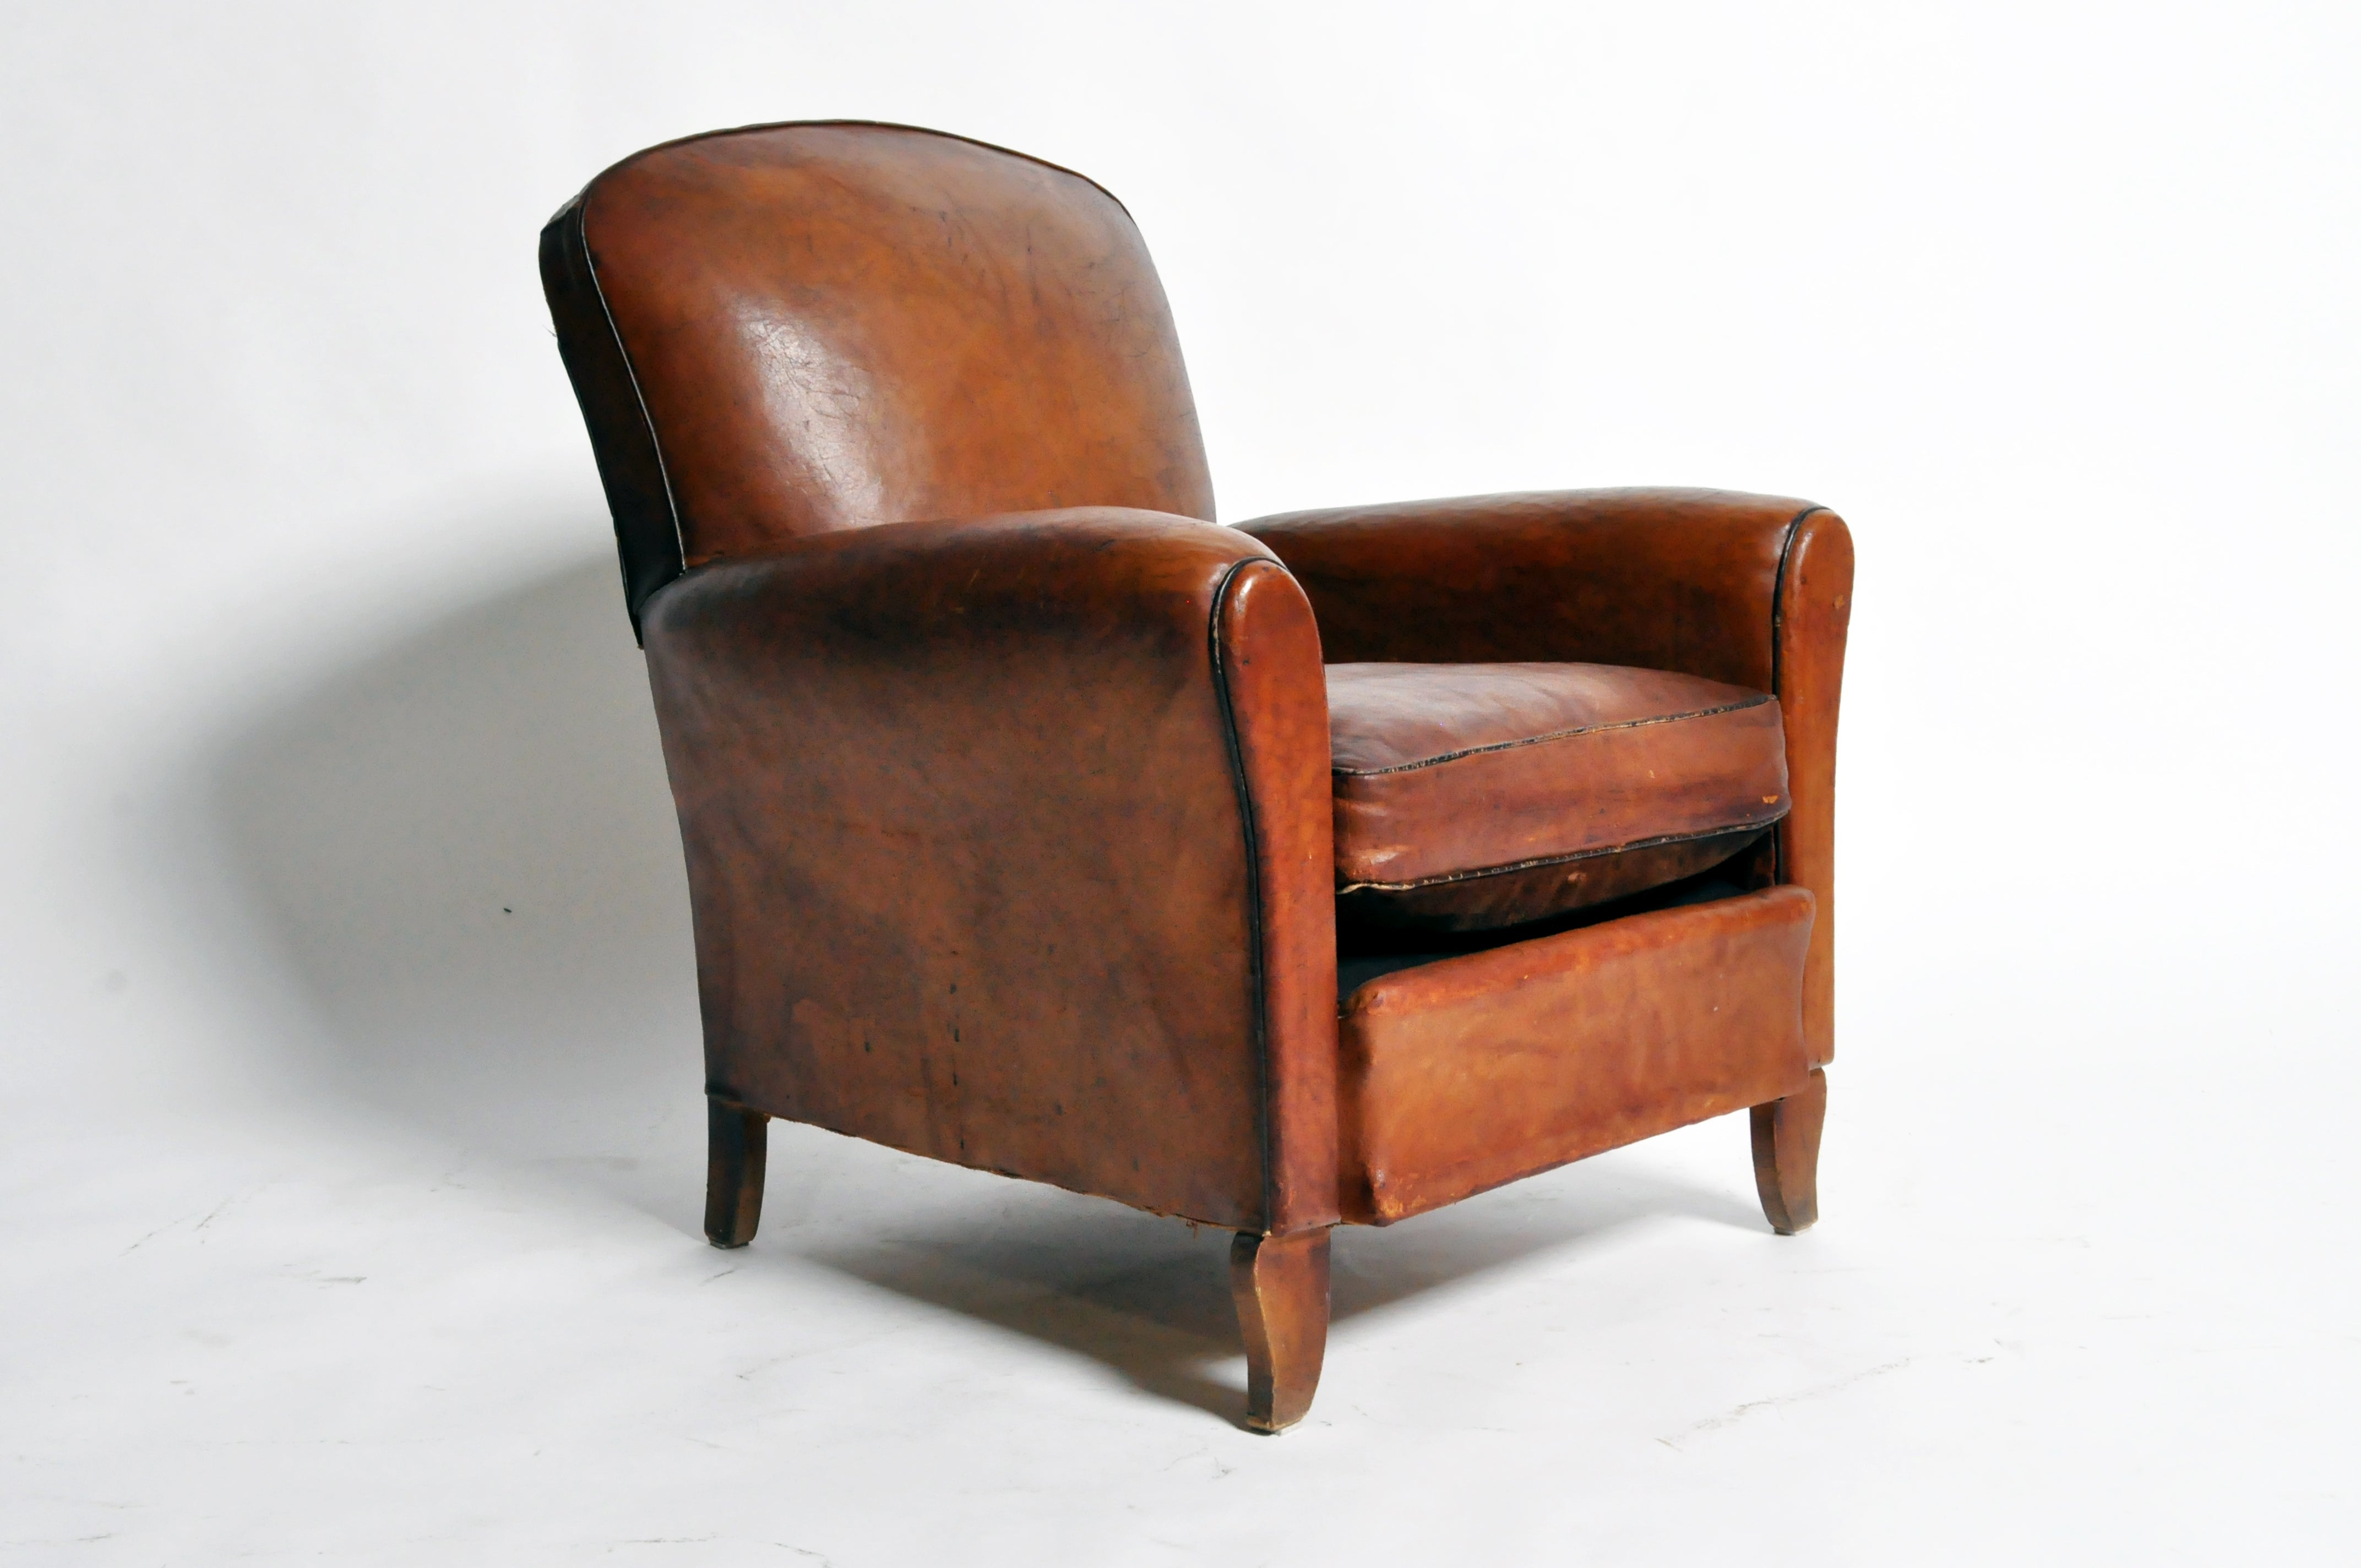 French Art Deco Leather Club Chair With Piping And Original